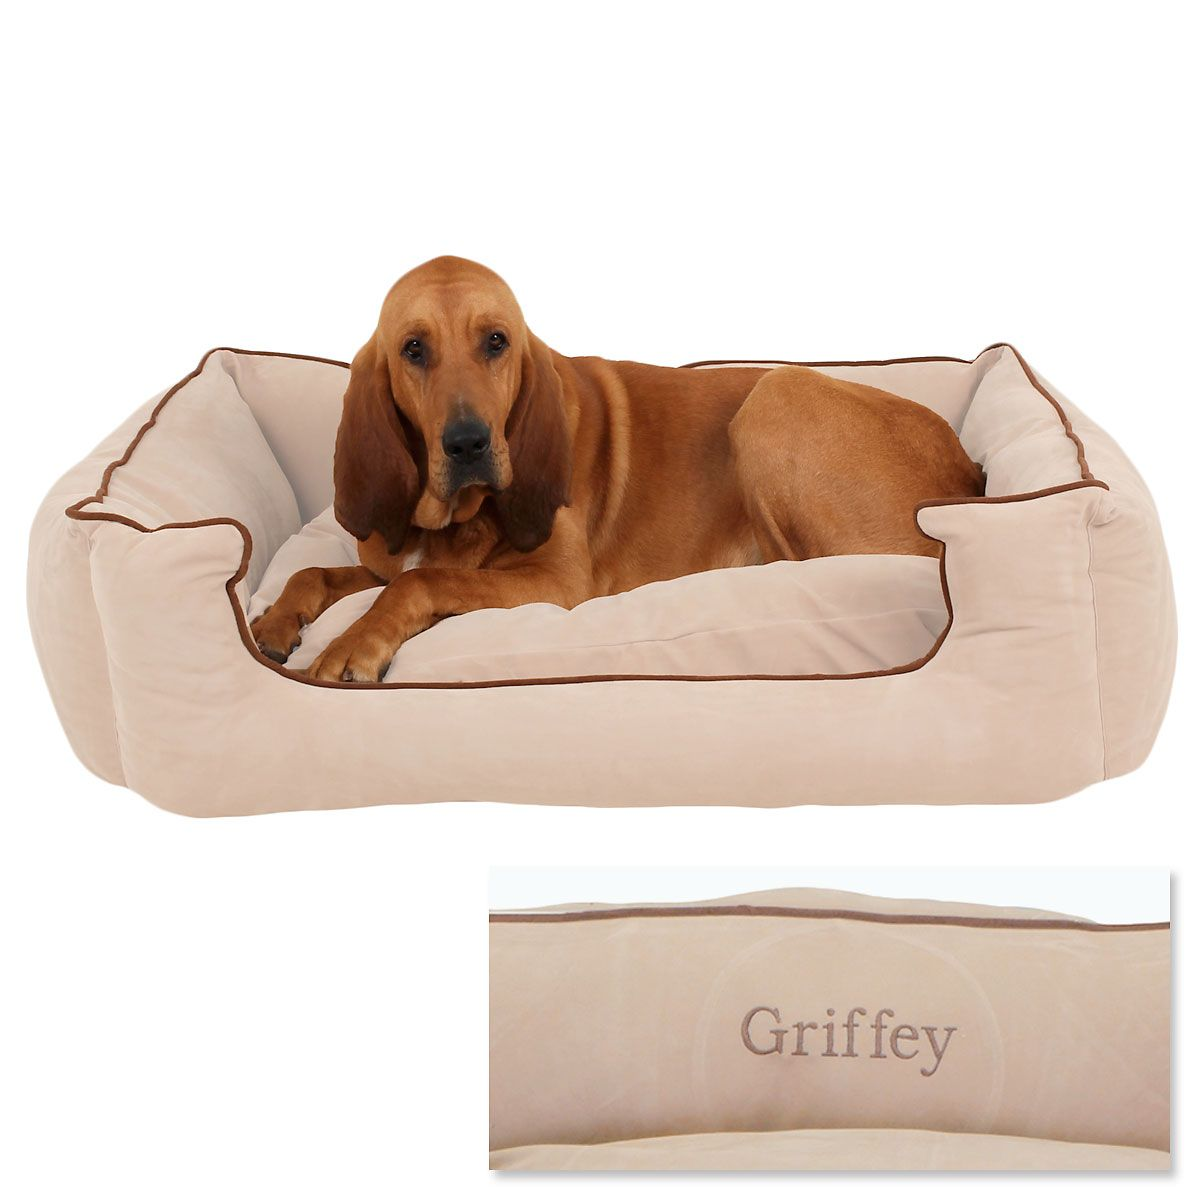 X-Large Low Profile Pet Bed - Linen